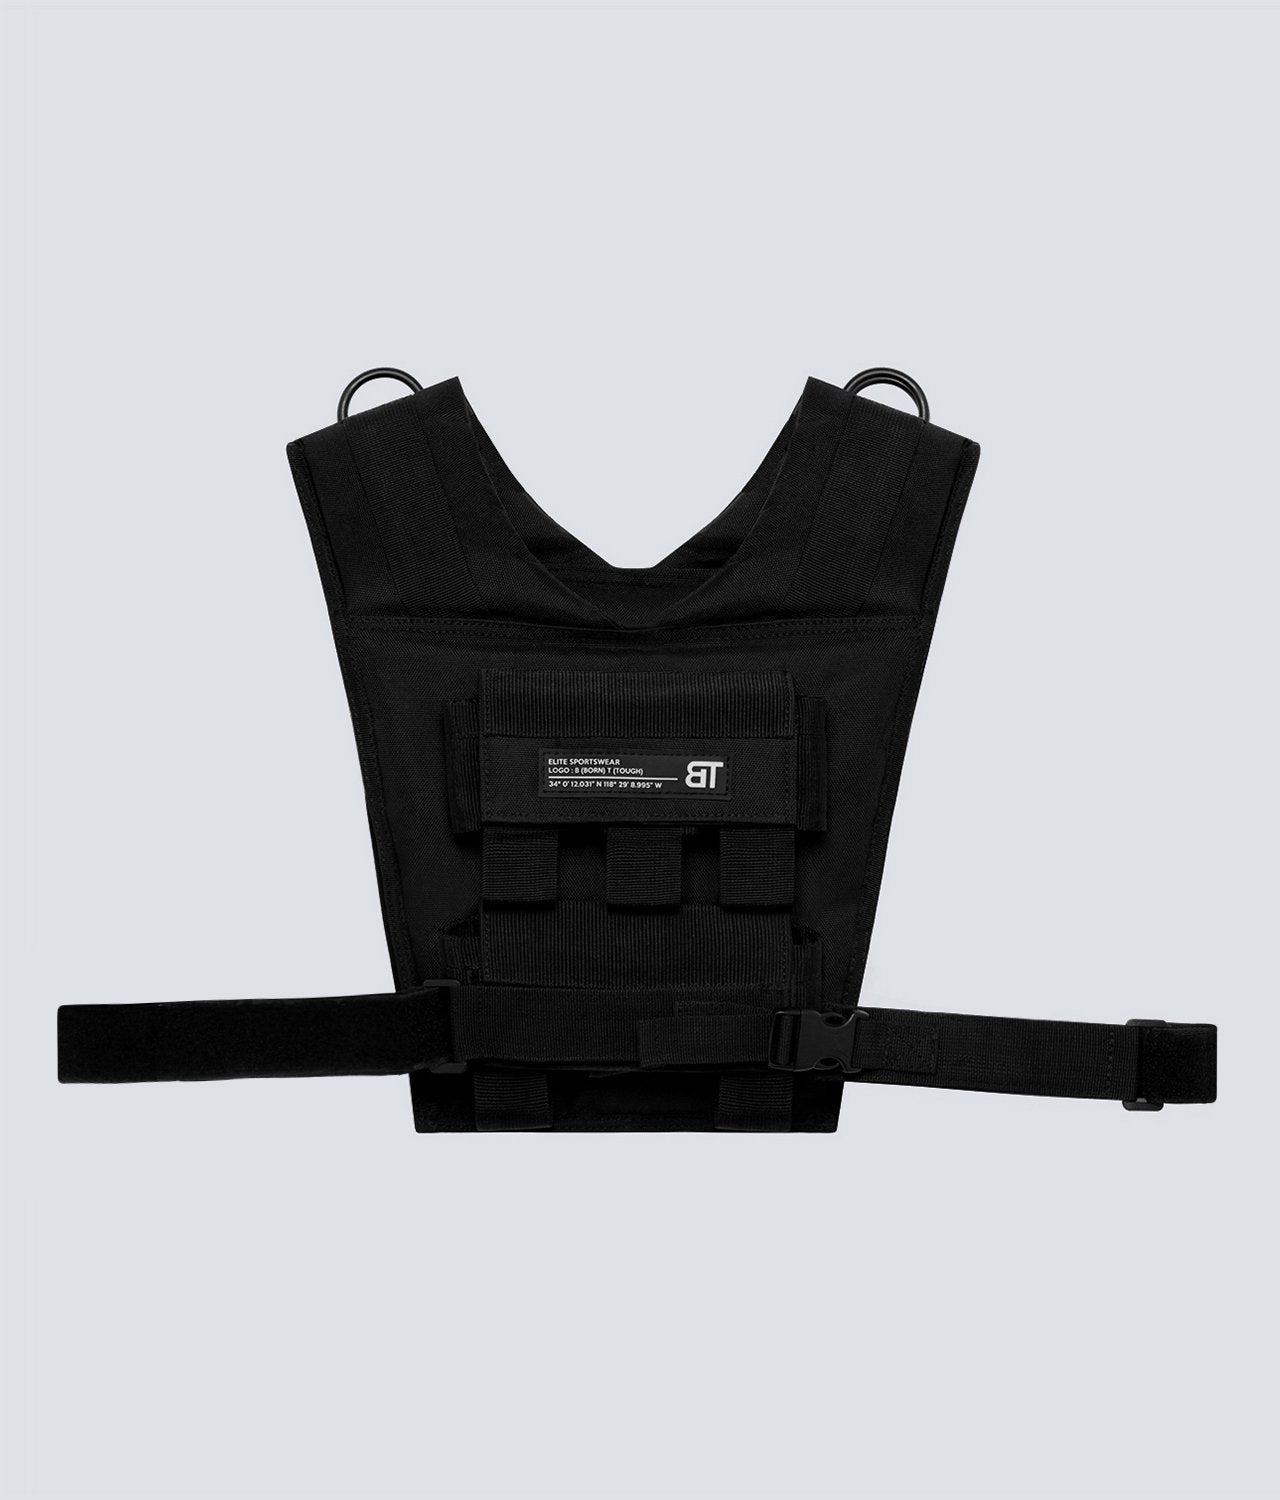 Born Tough United Kingdom Adjustable Weighted Vest